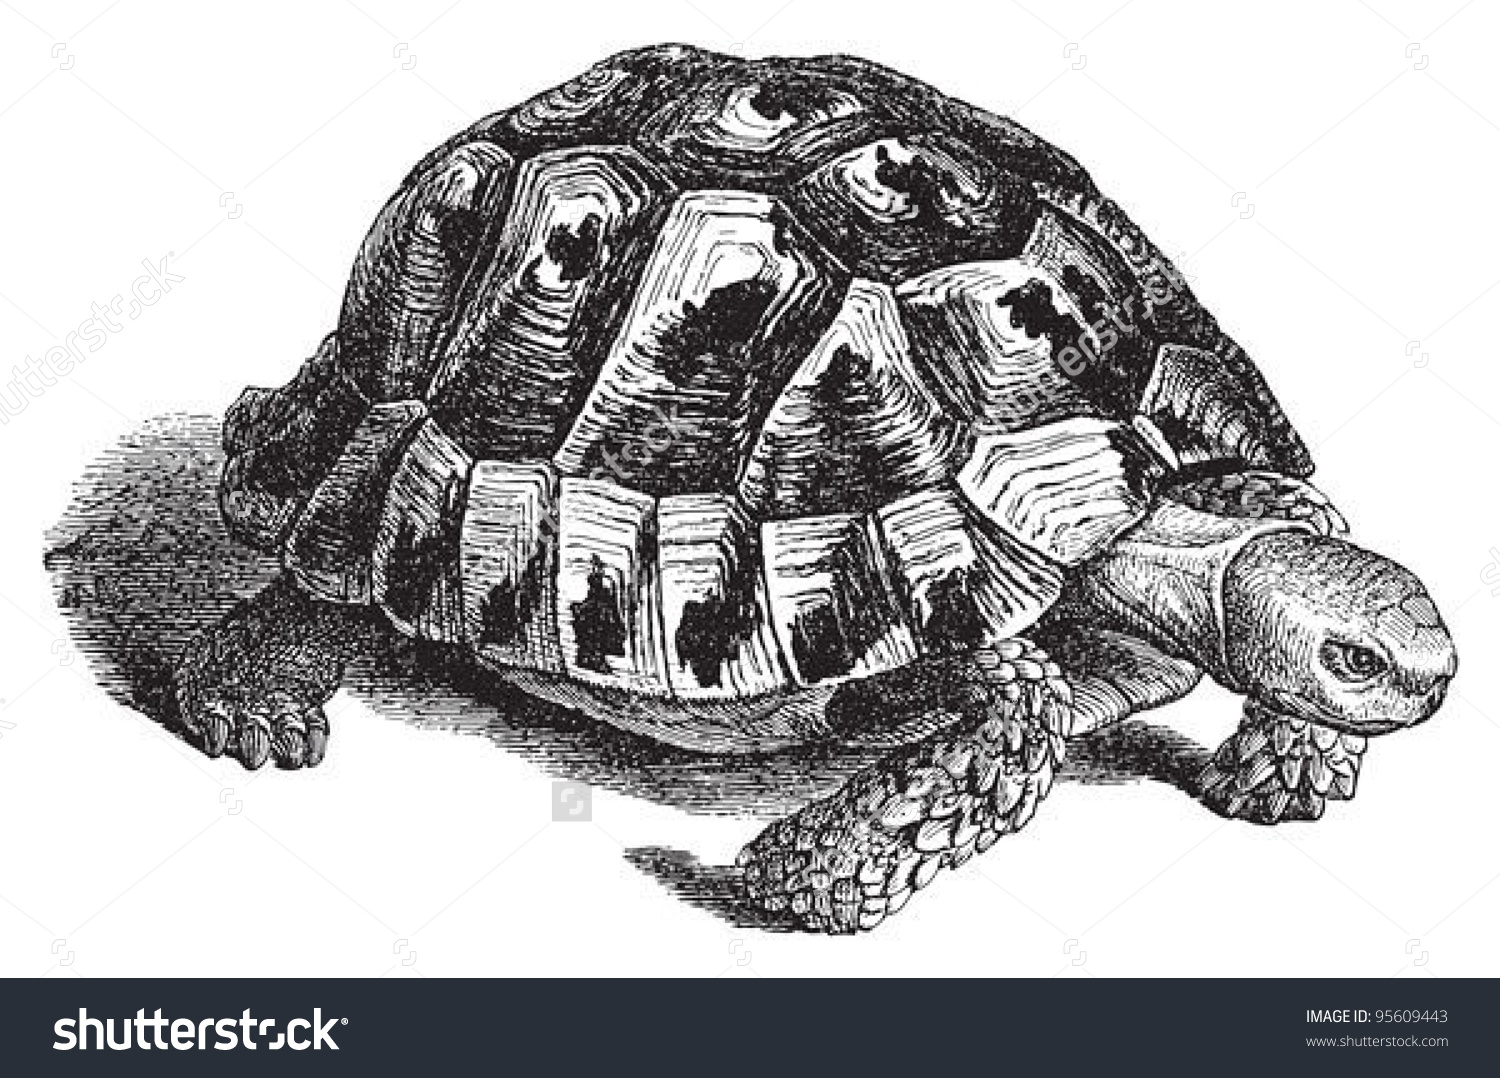 Spurthighed Tortoise Greek Tortoise Testudo Graeca Stock Vector.